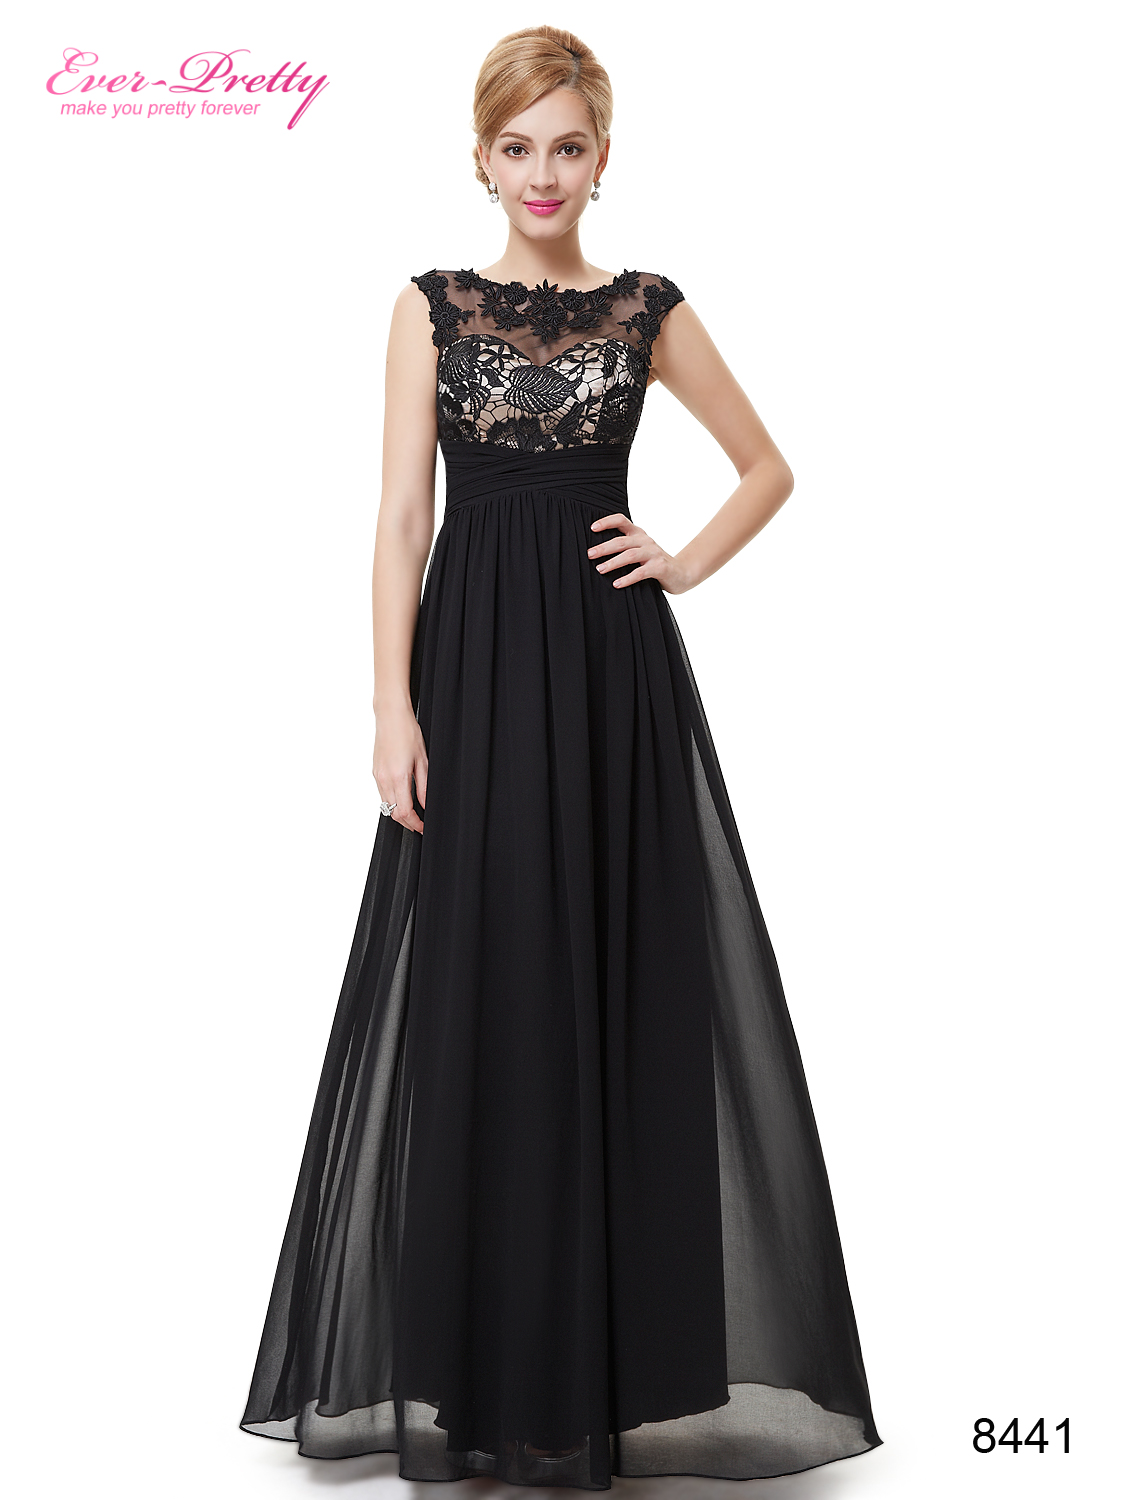 Ever Pretty Lace Illusion Neckline Long Evening Dress | Blingby